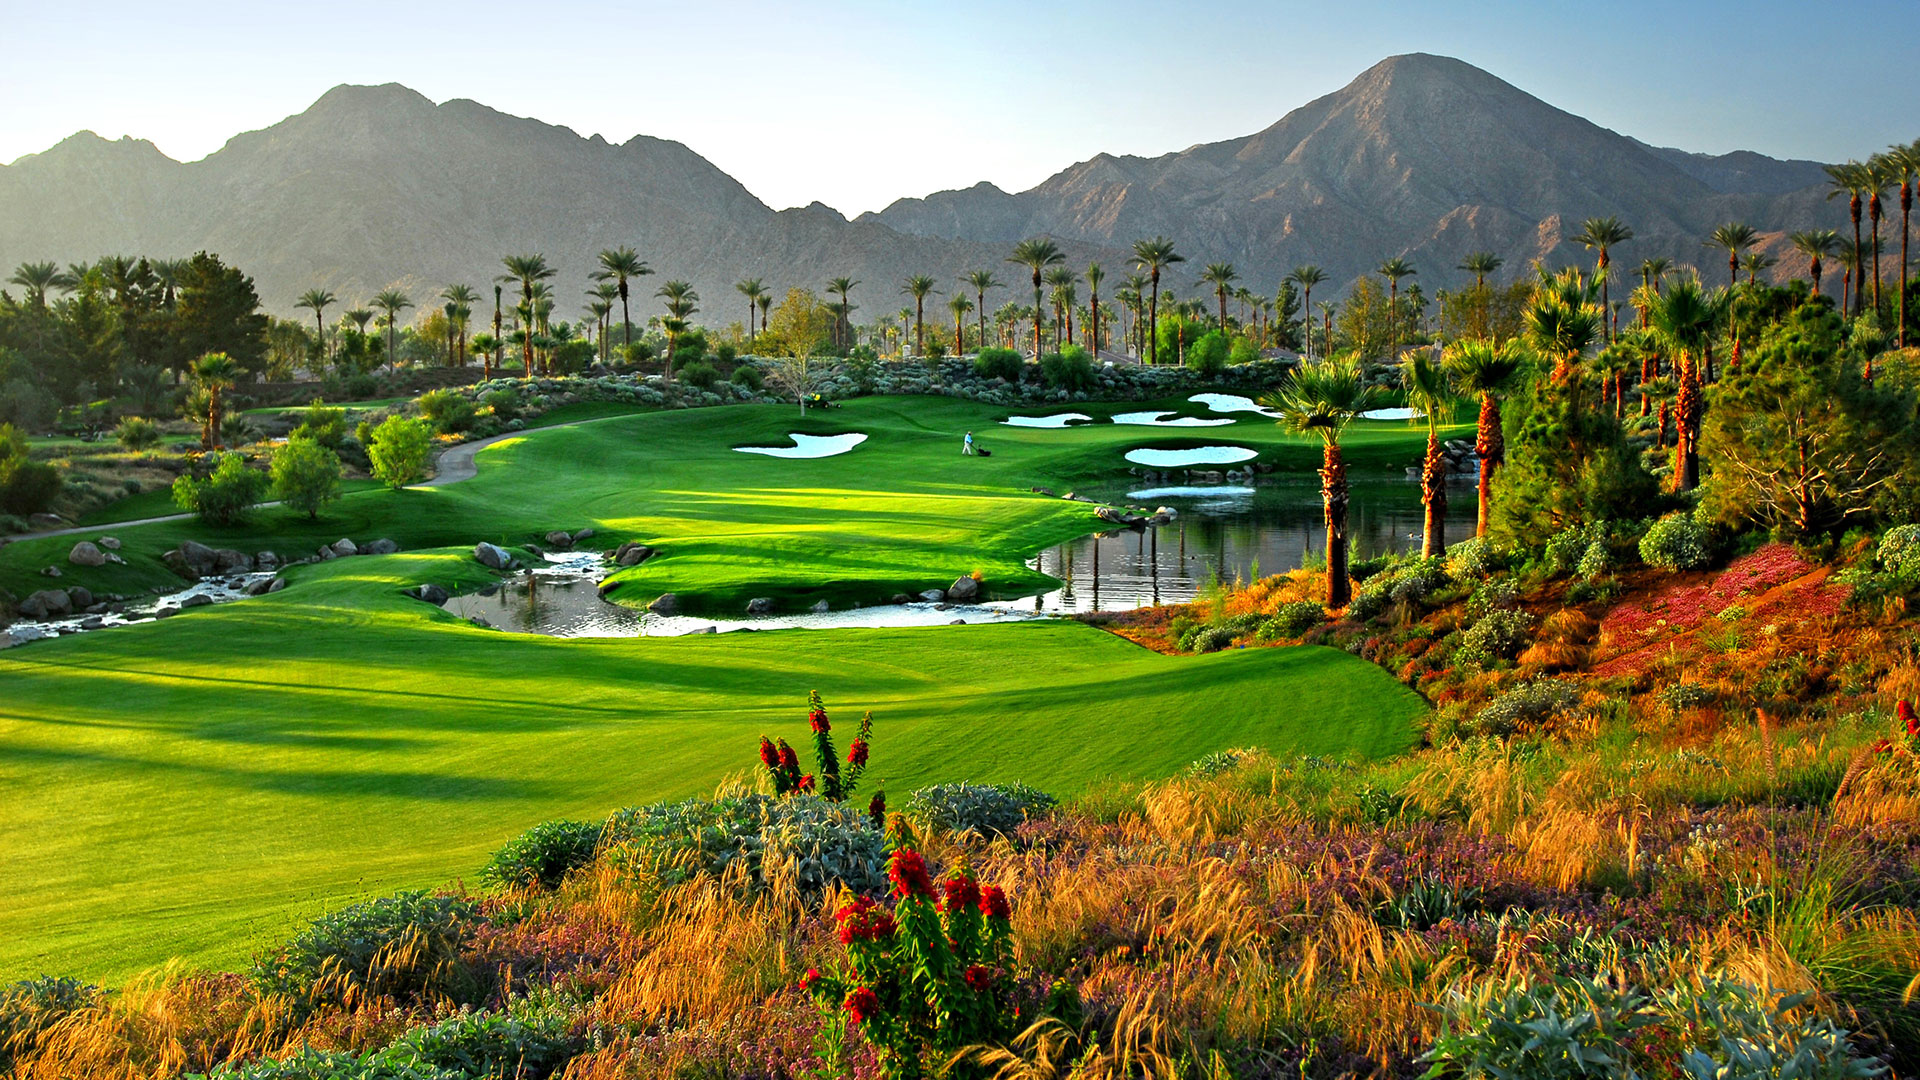 Palm springs golf courses: 10best california course reviews.